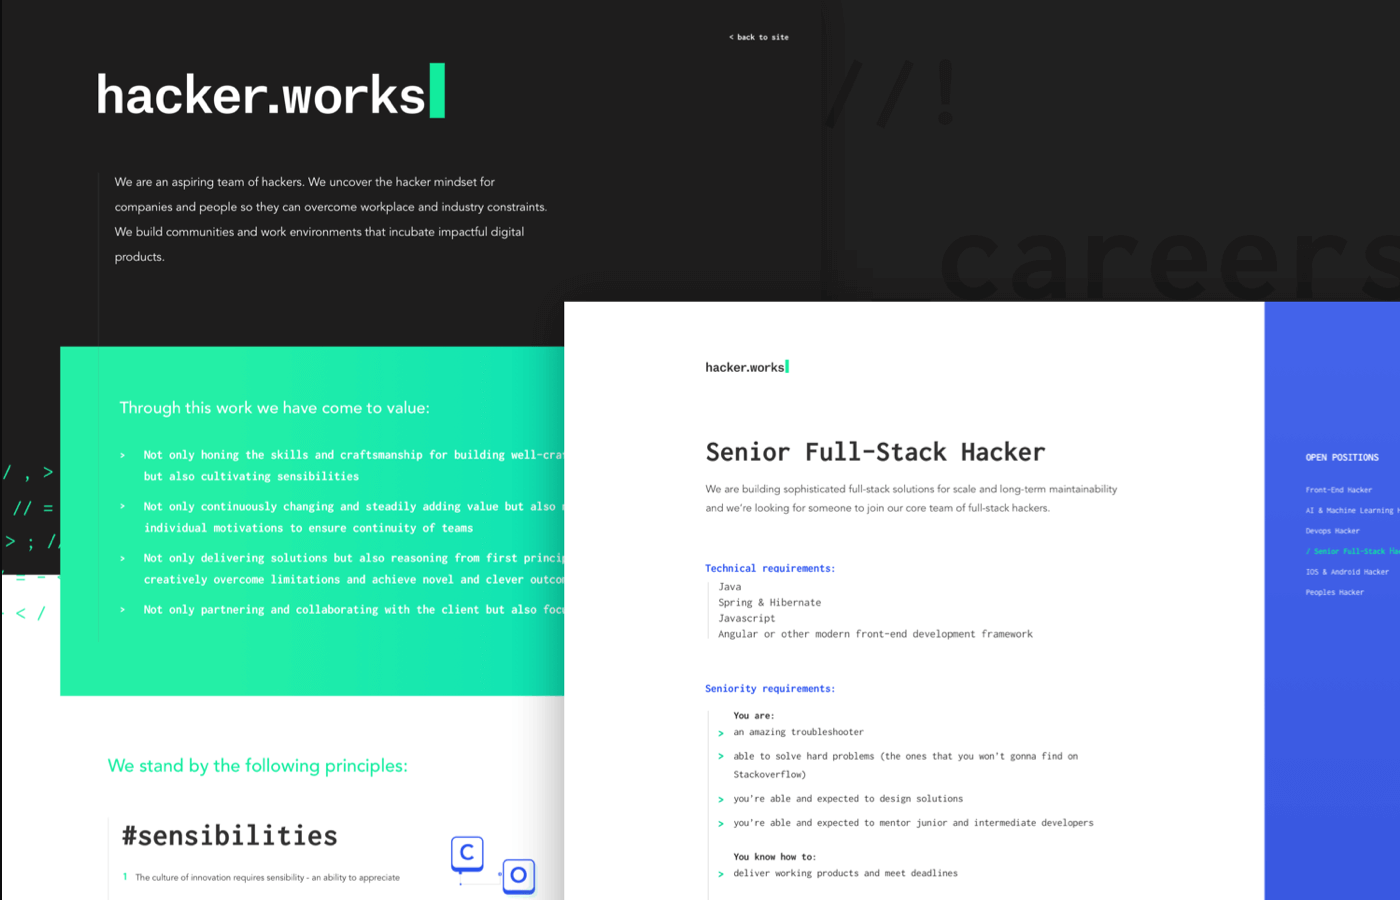 hackerworks-careers